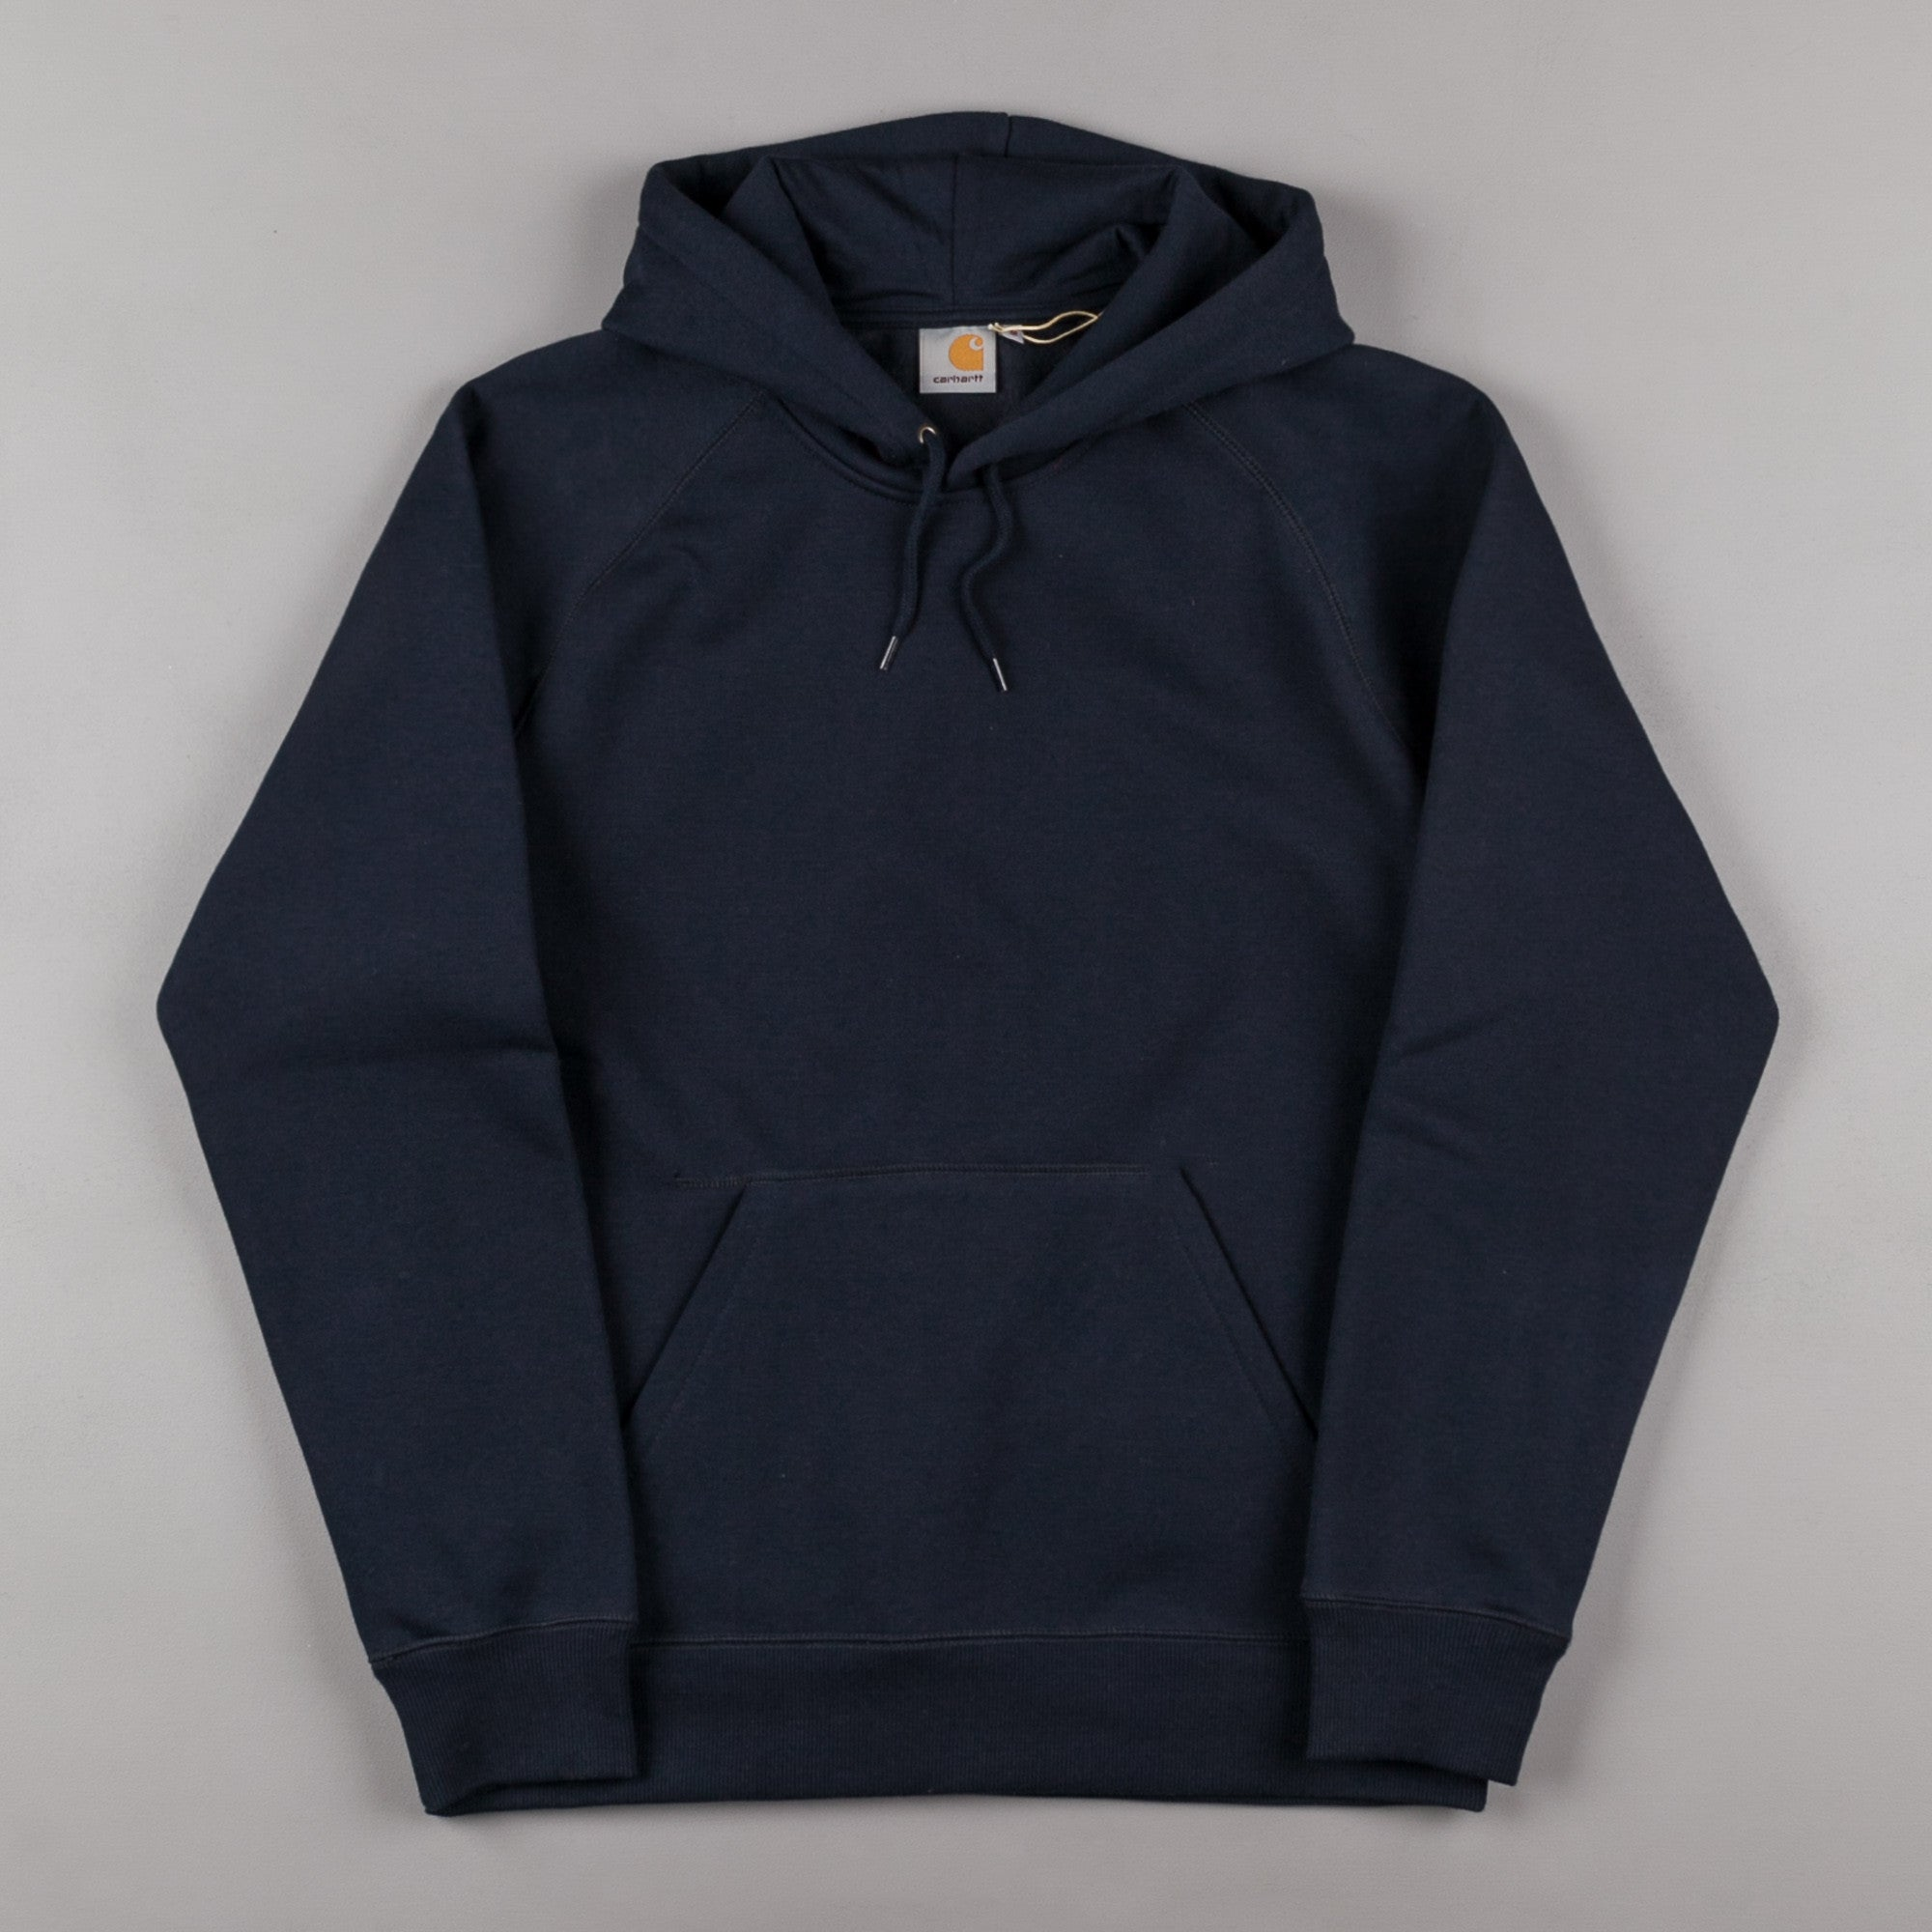 Carhartt Chase Hooded Sweatshirt - Navy